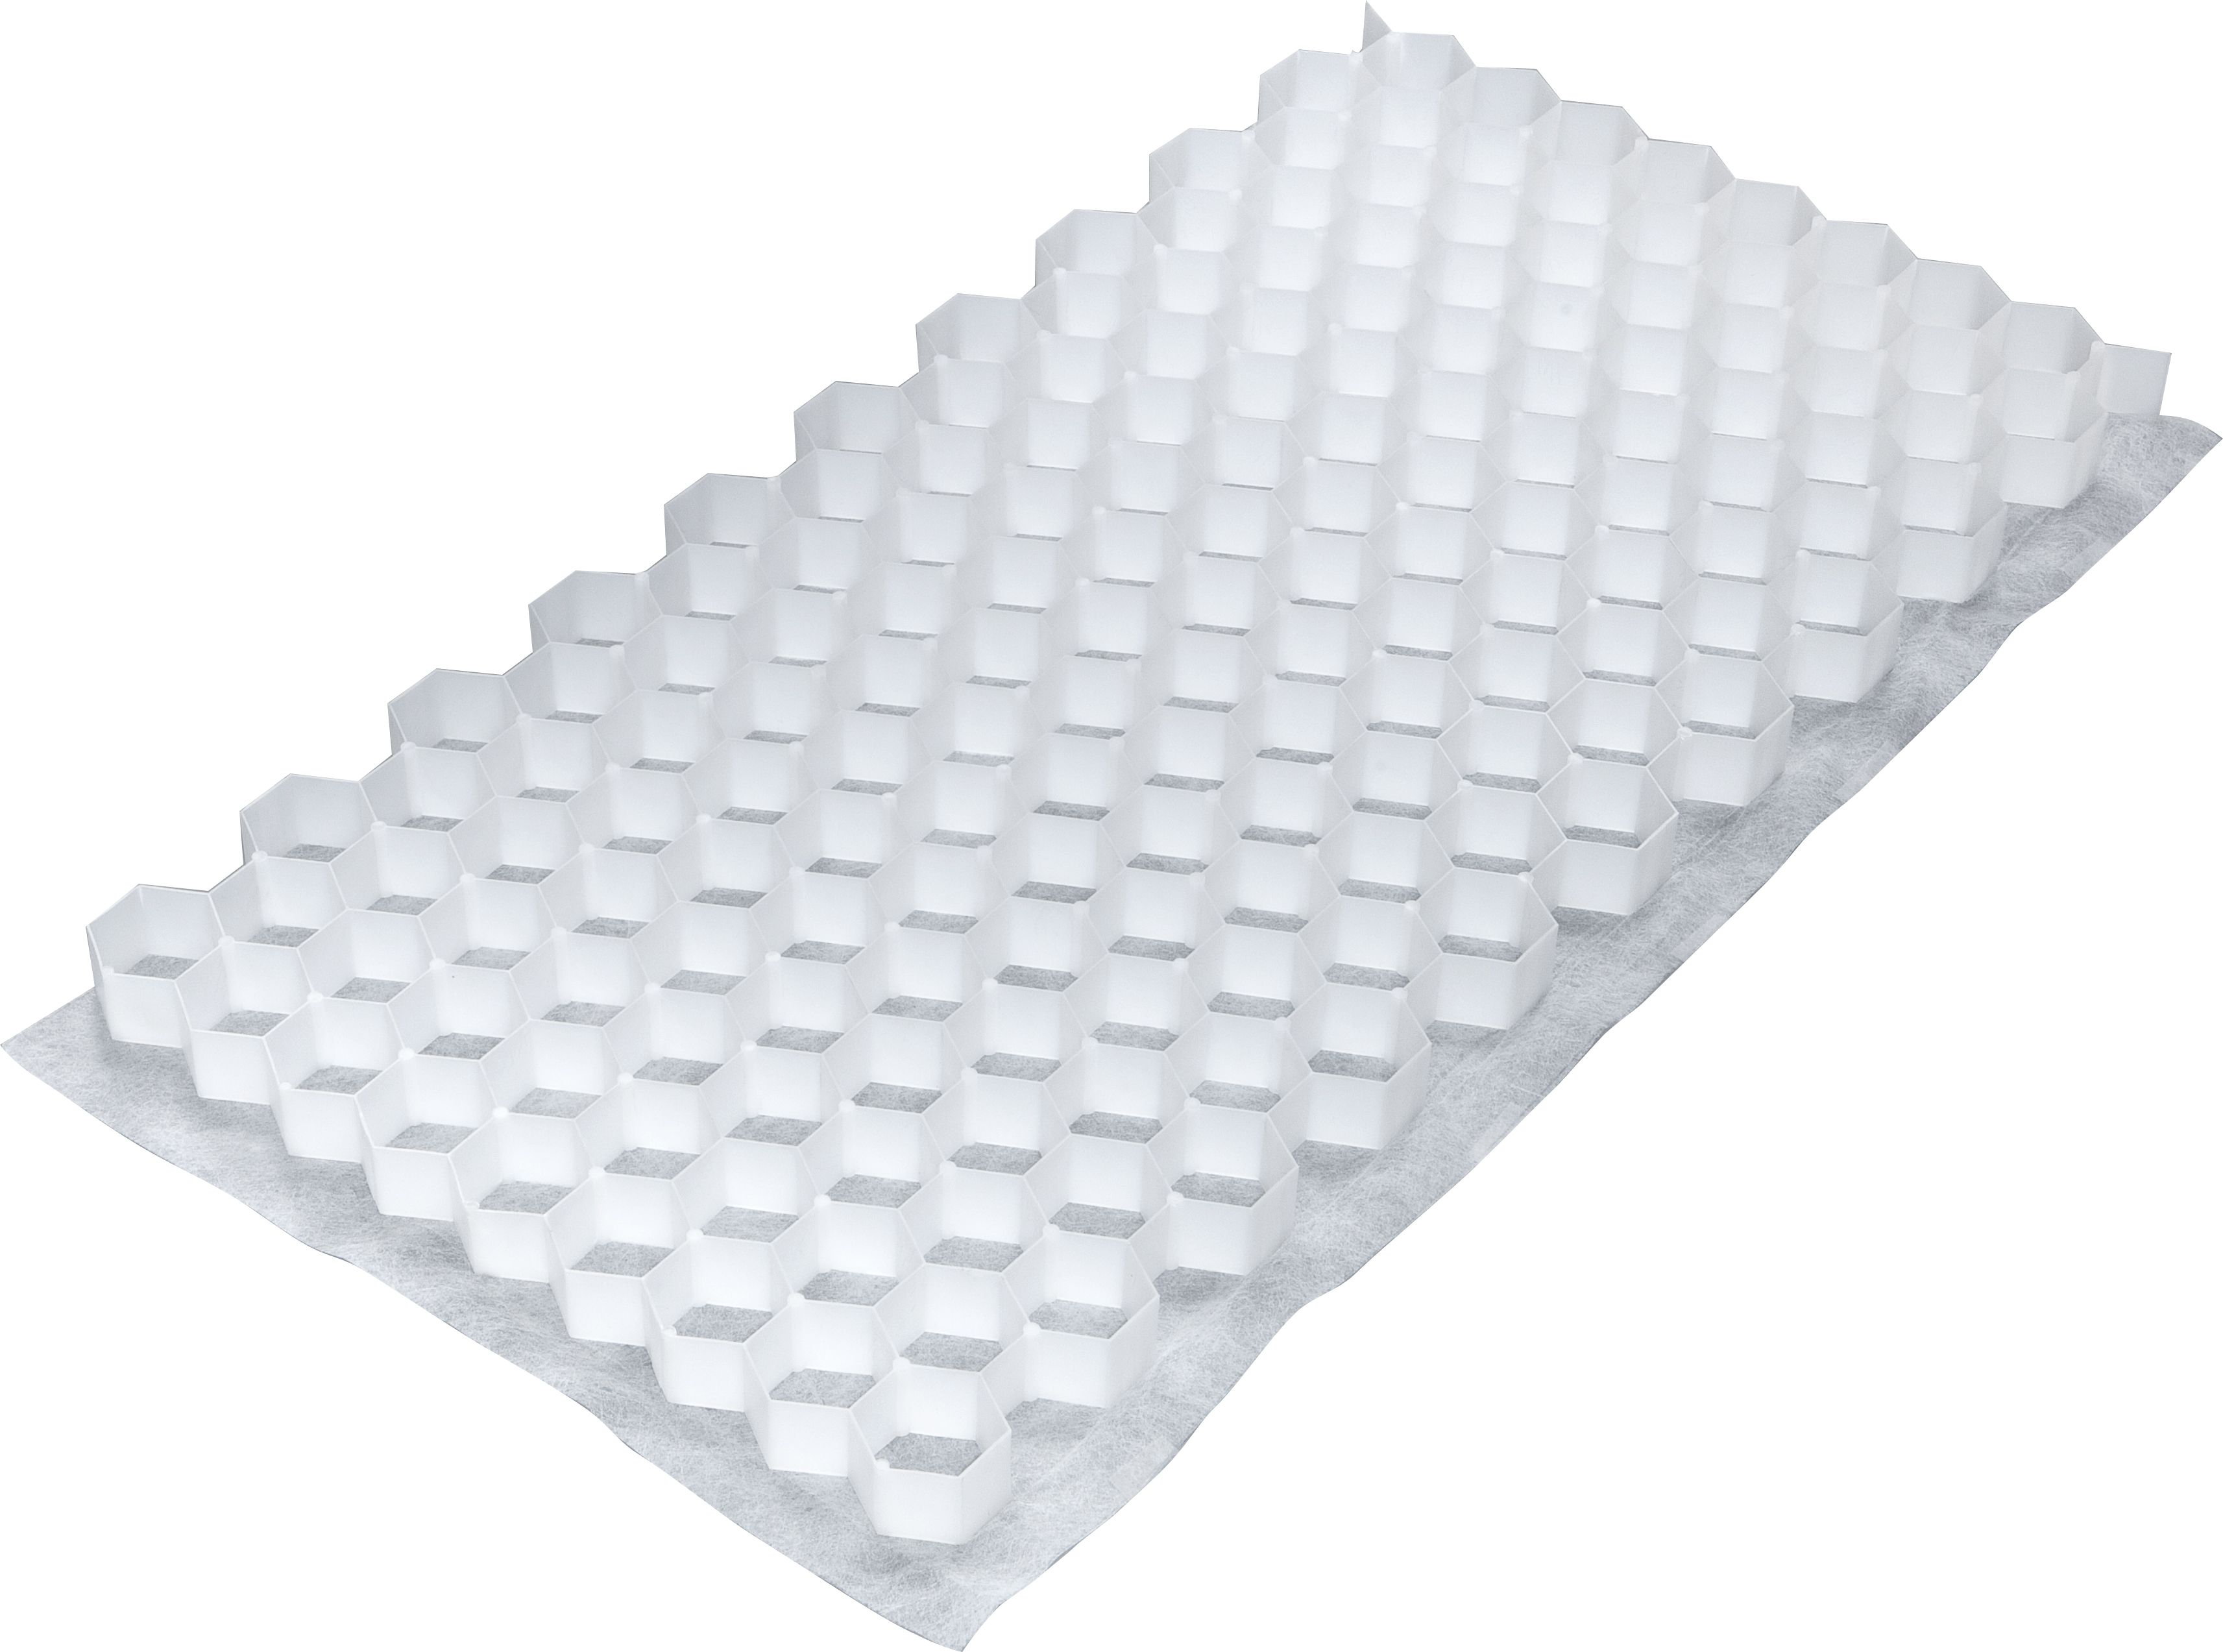 Diall Plastic Pathway Gravel Support Mat Departments